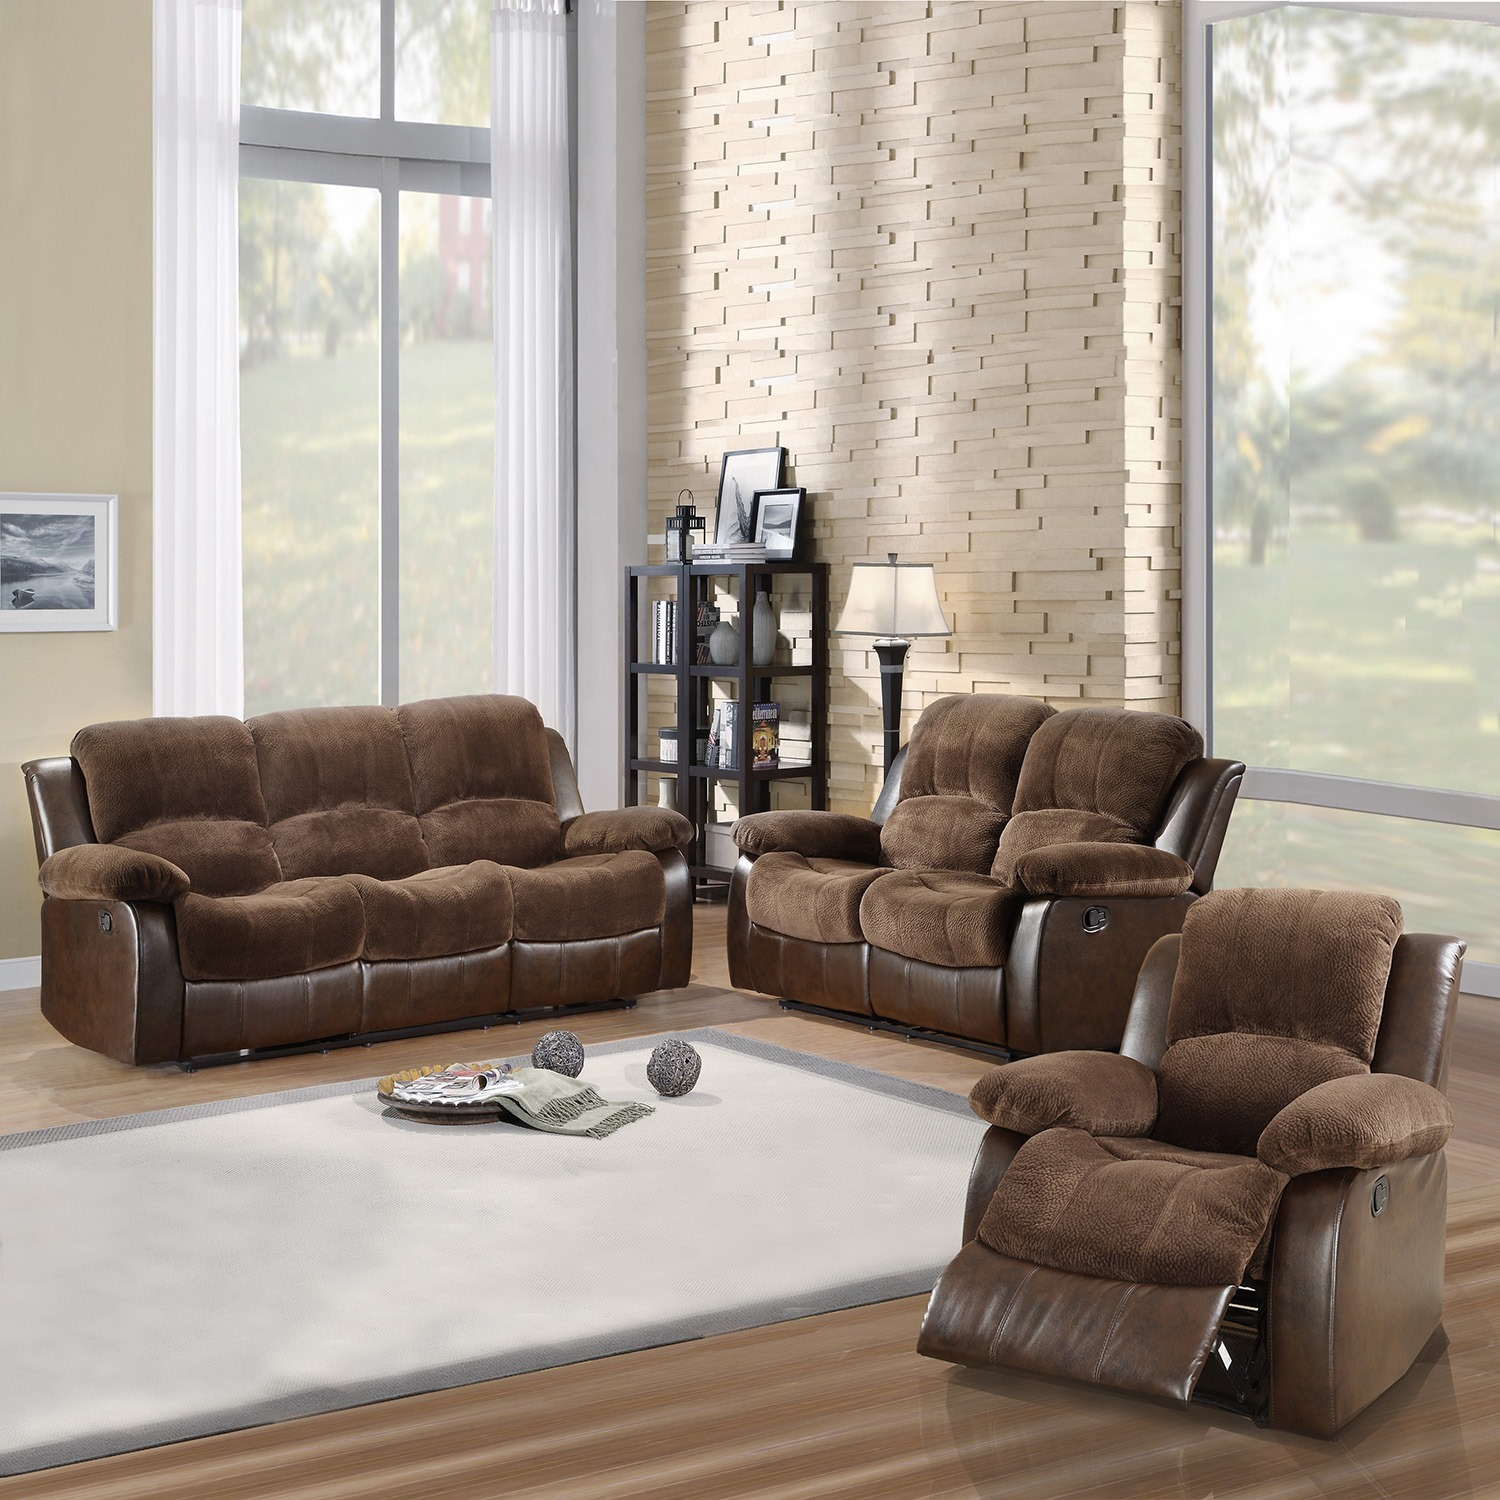 Overstock Living Room Sets: TRIBECCA HOME Coleford 3-piece Tufted Transitional